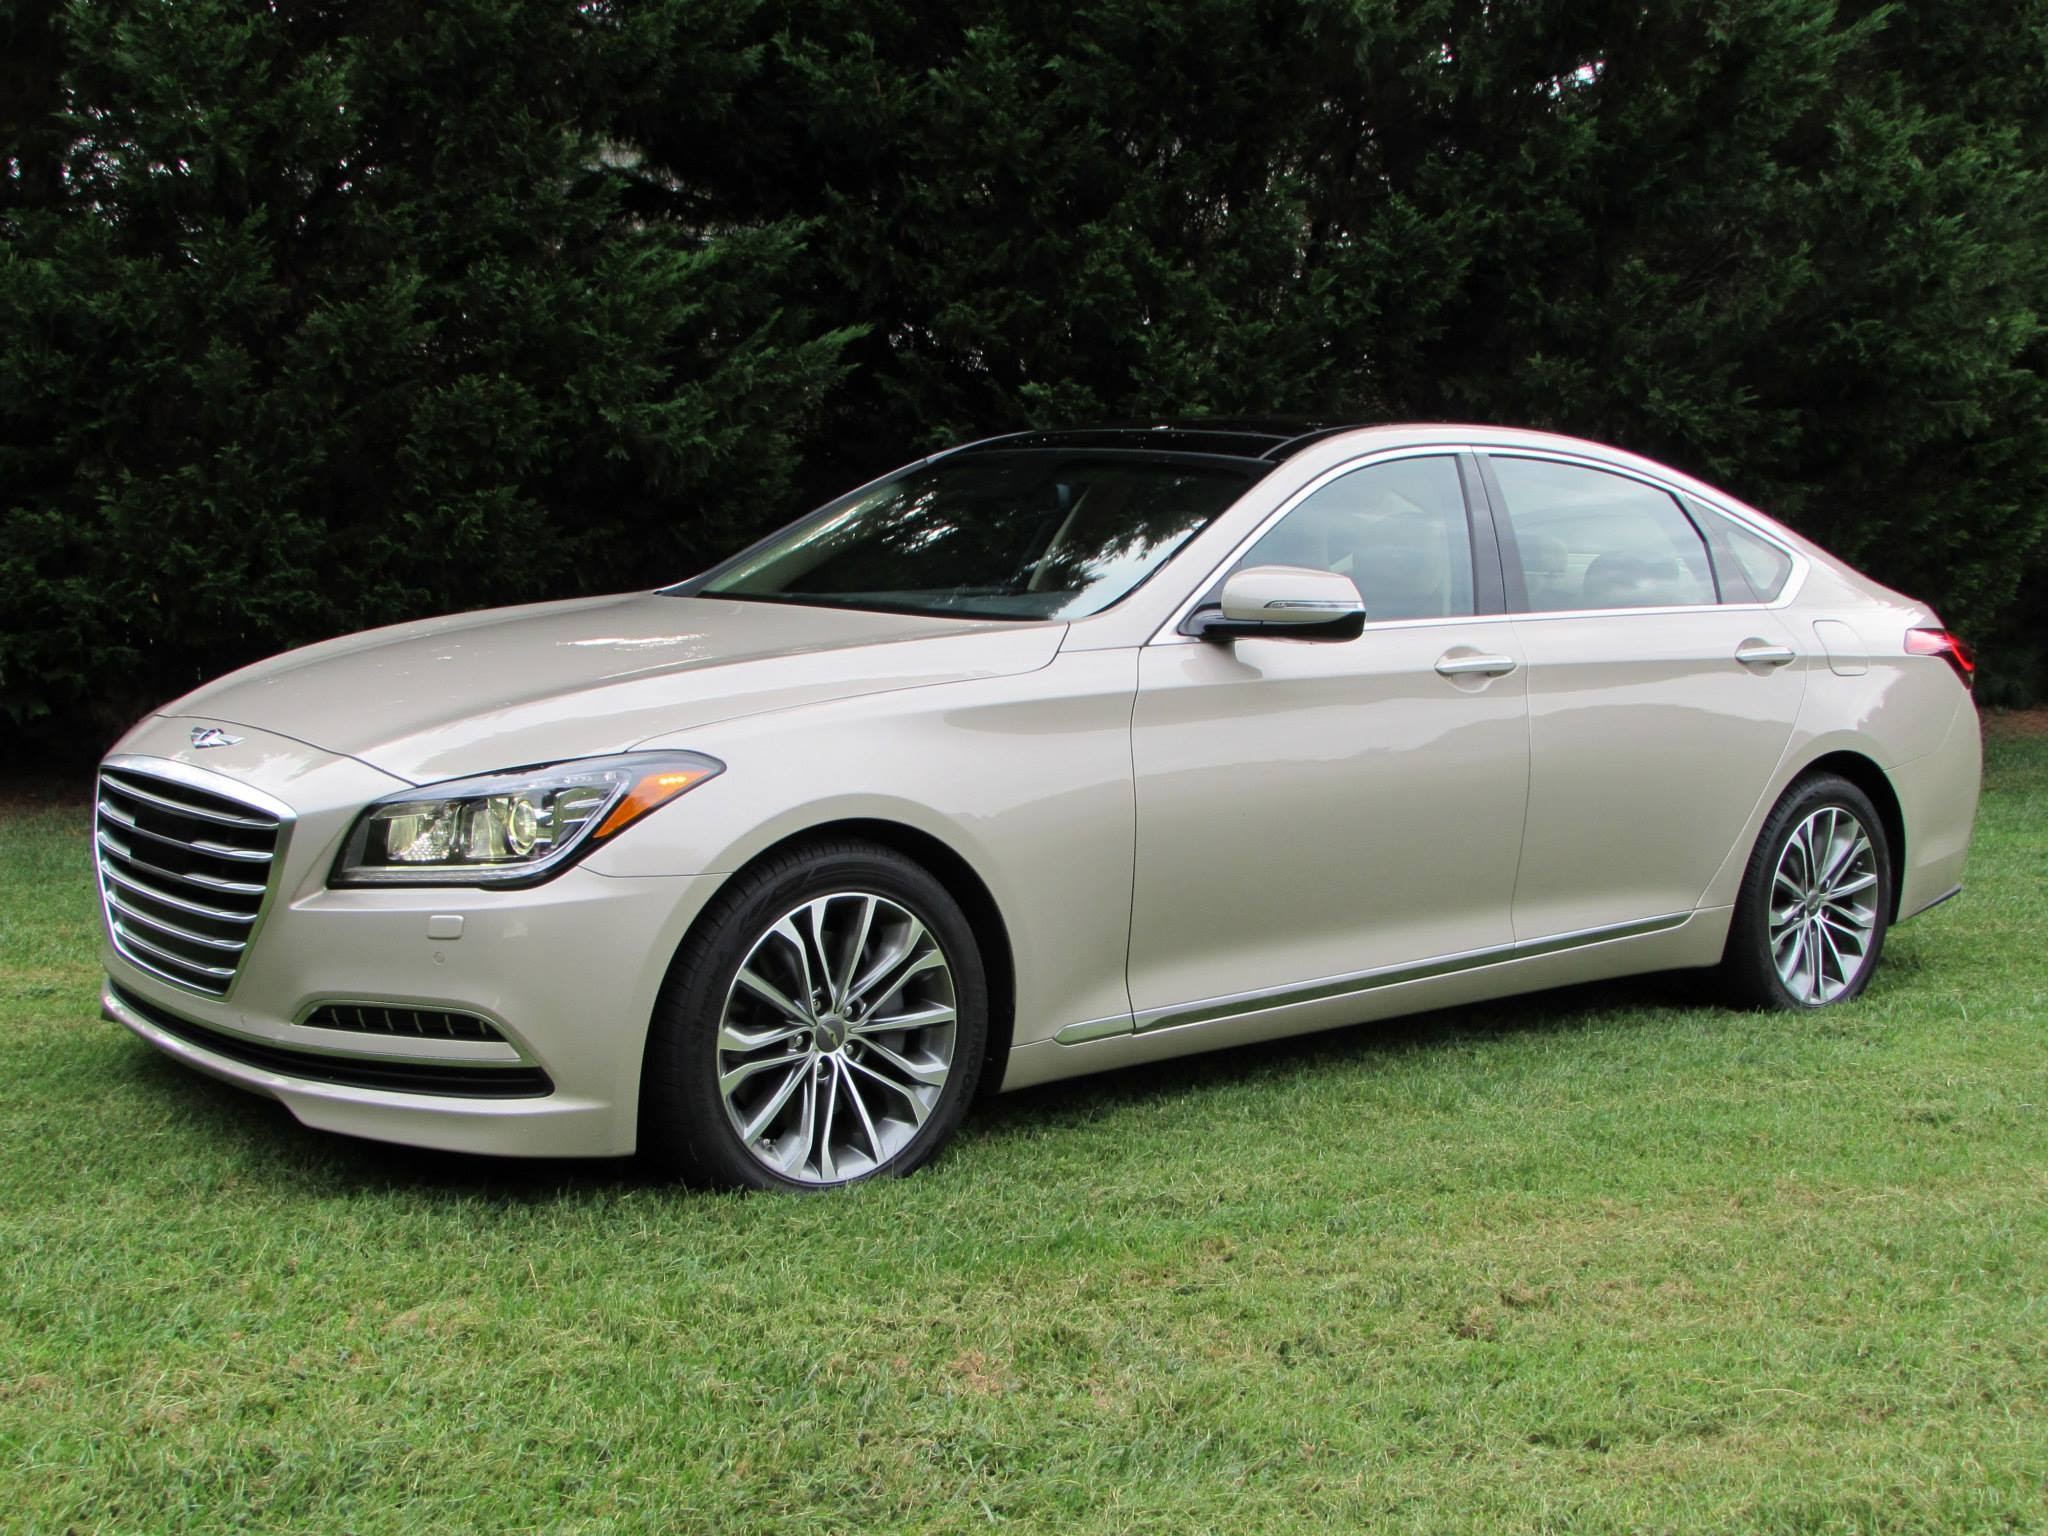 2015 Hyundai Genesis Car Review WalkThrough Video